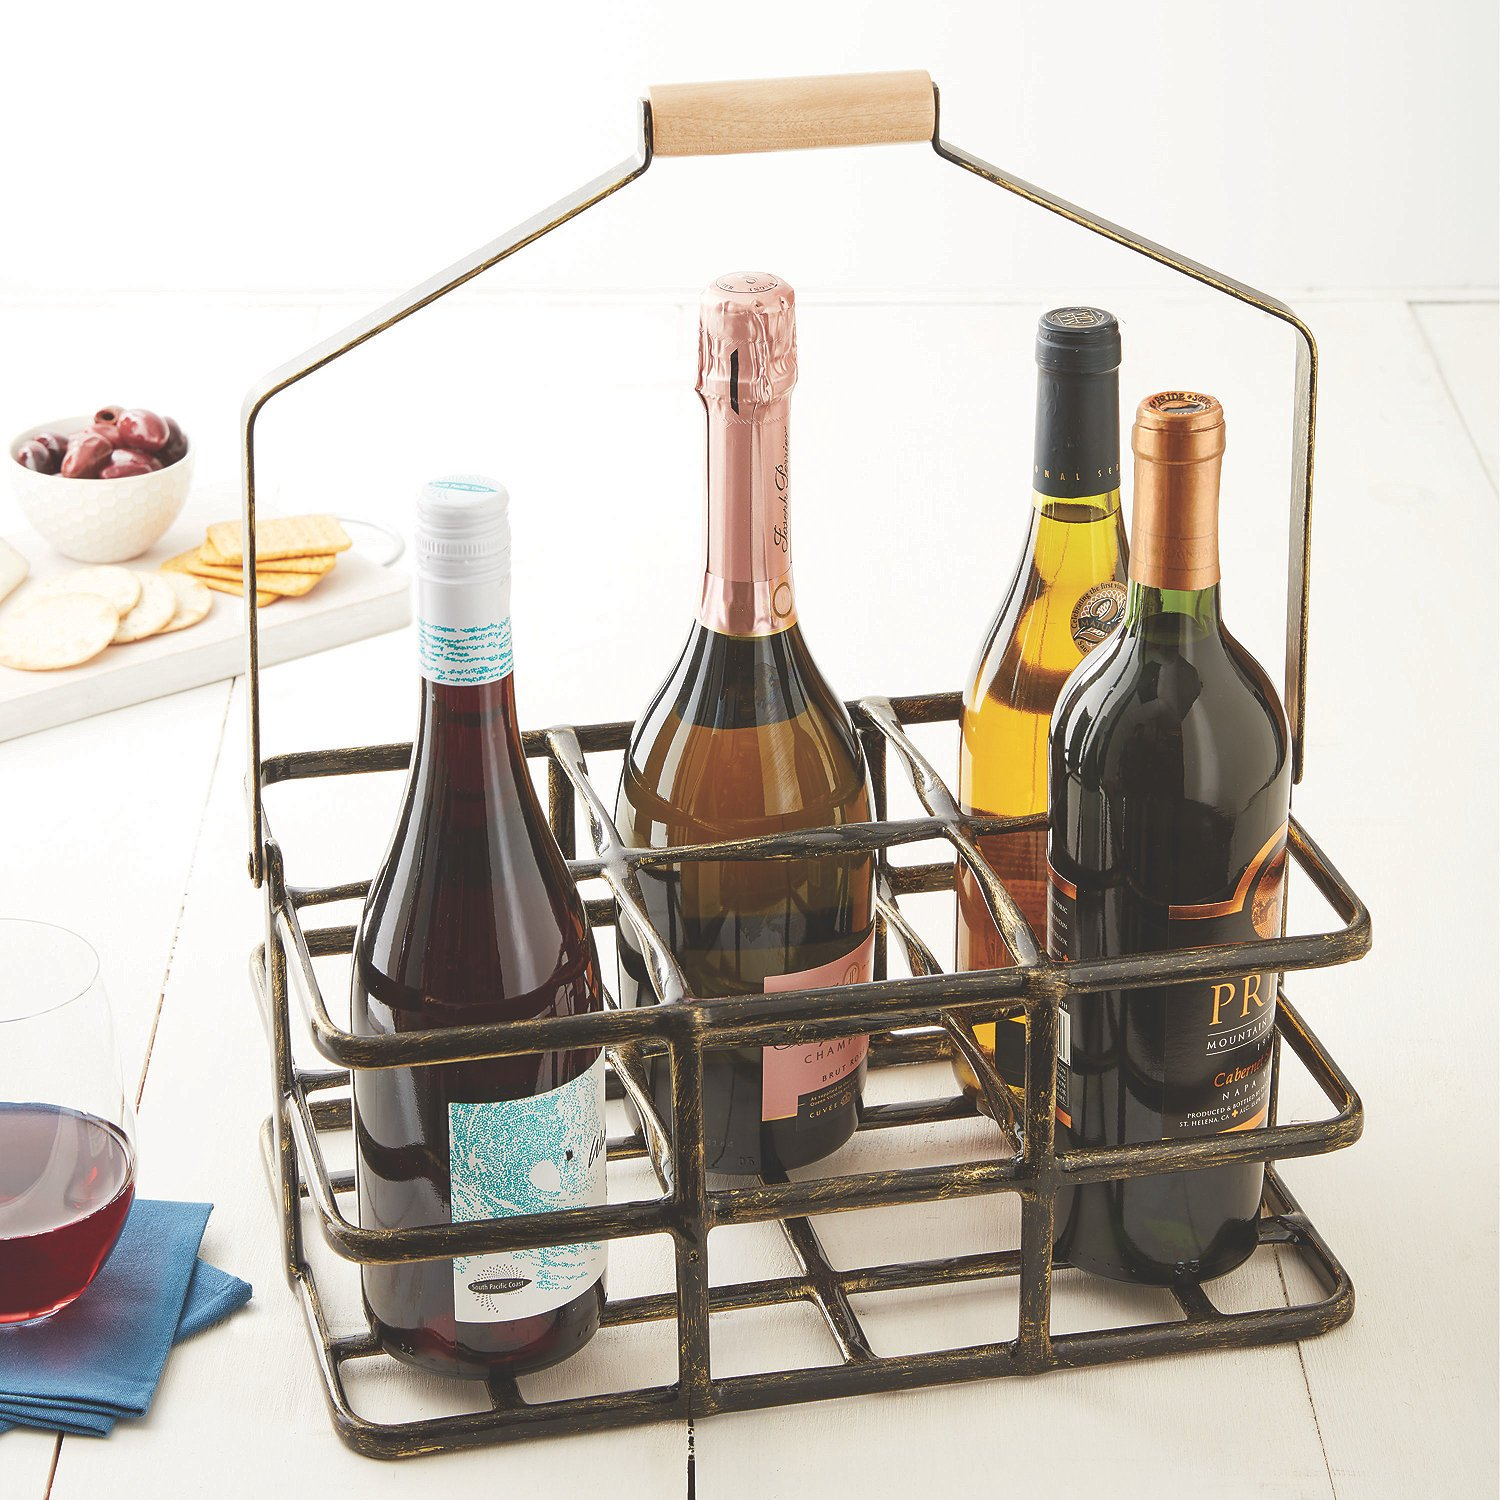 Professional 6 Bottle Wine Caddy for All Size & Shape Bottles. Sturdy Black Rubber Coated Frame Protects Bottles. Real Natural Wood Handle Folds for Compact Storage. Rugged and Long Lasting by Wine Enthusiast